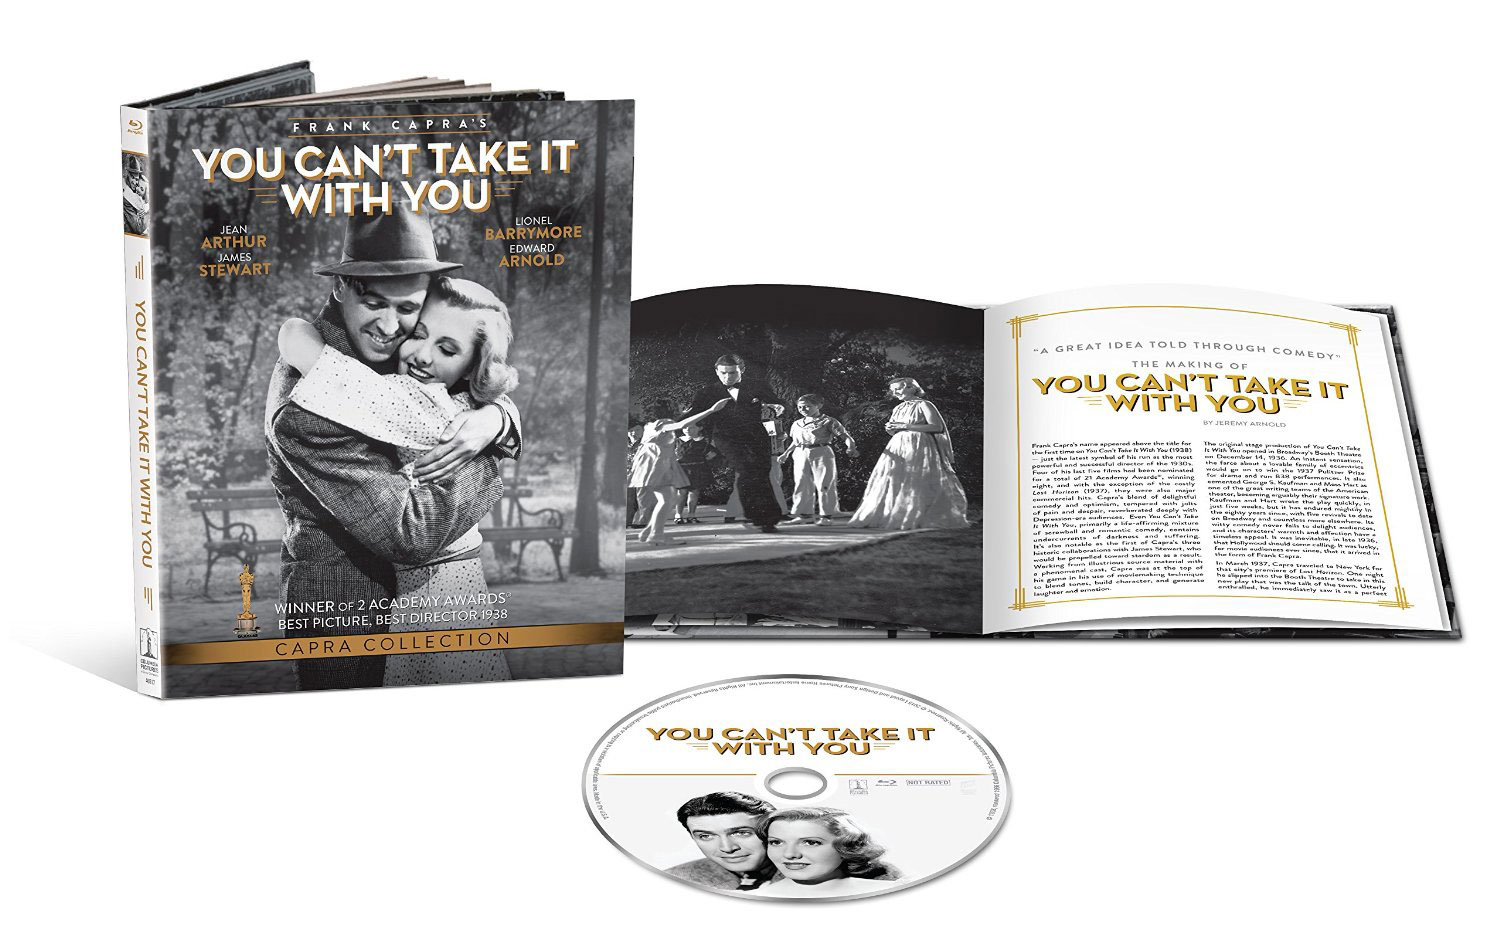 You Can't Take It With You - Blu-ray